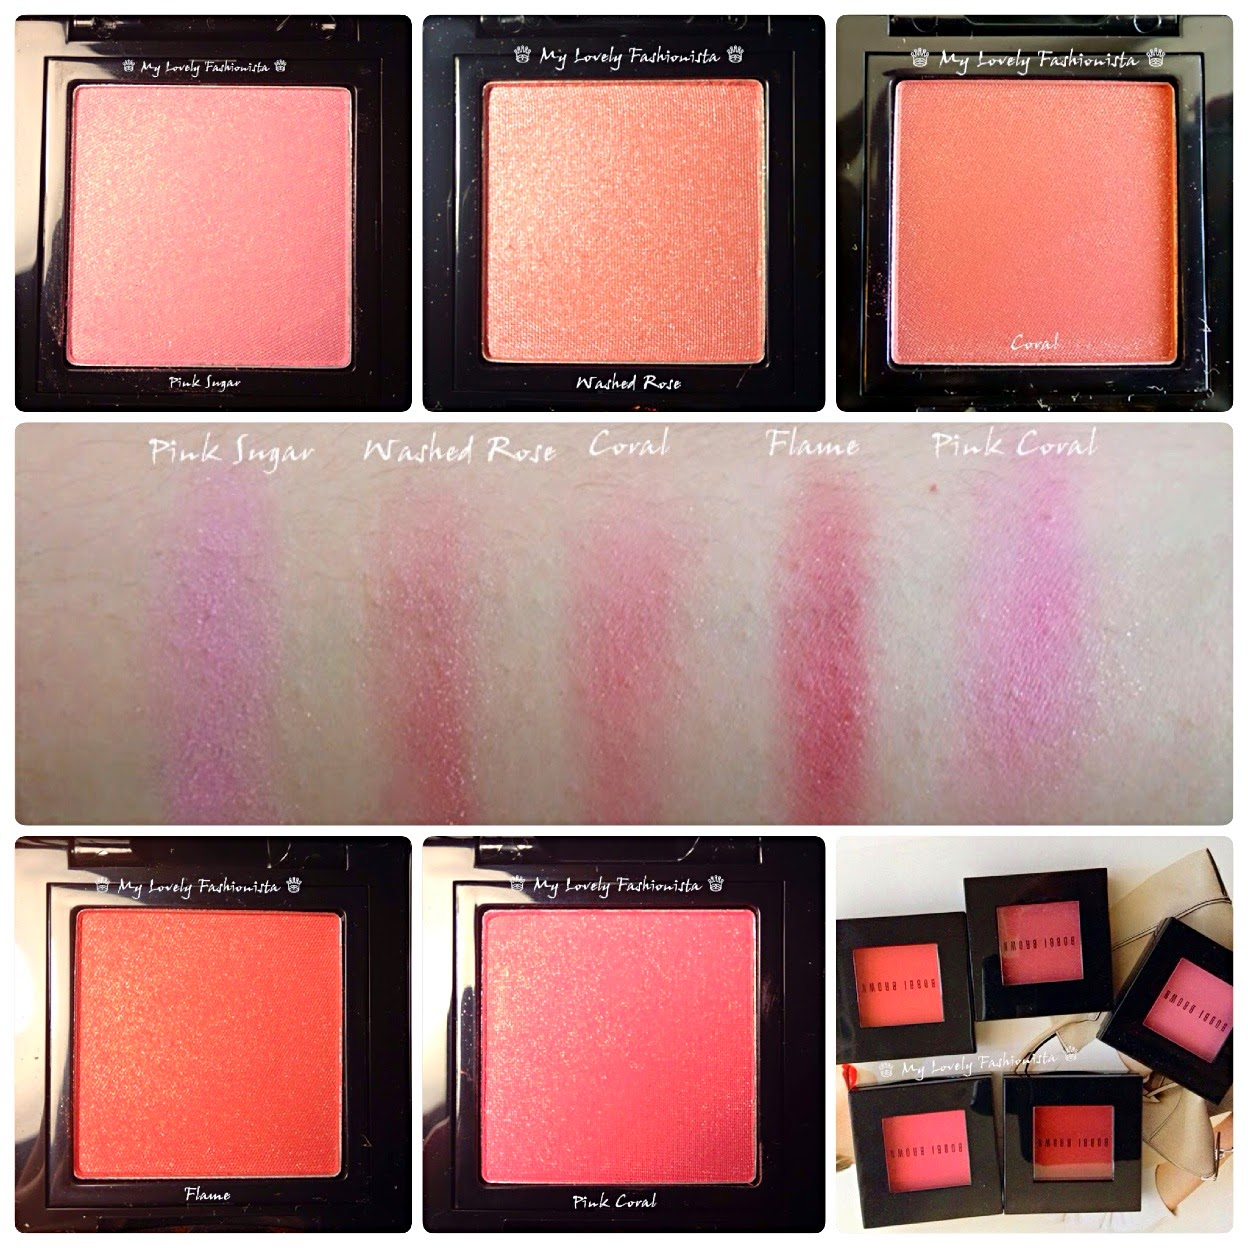 Bobbi Brown Shimmer Blushes - #1 Pink Sugar and #2 Washed Rose ...